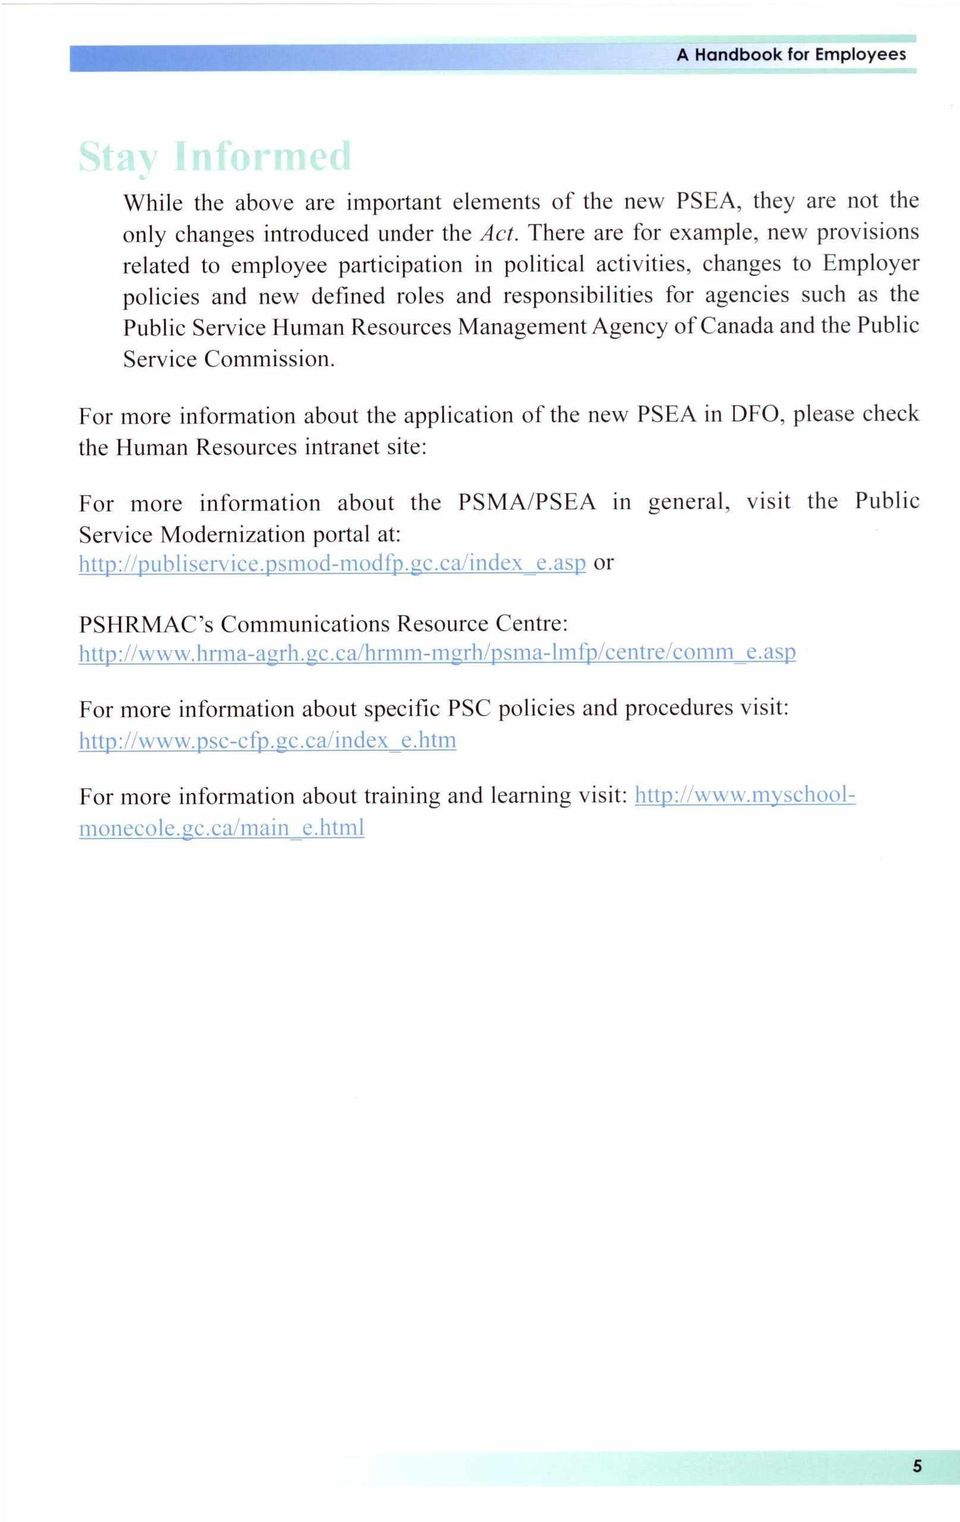 Public Service Human Resources Management Agency of Canada and the Public Service Commission.